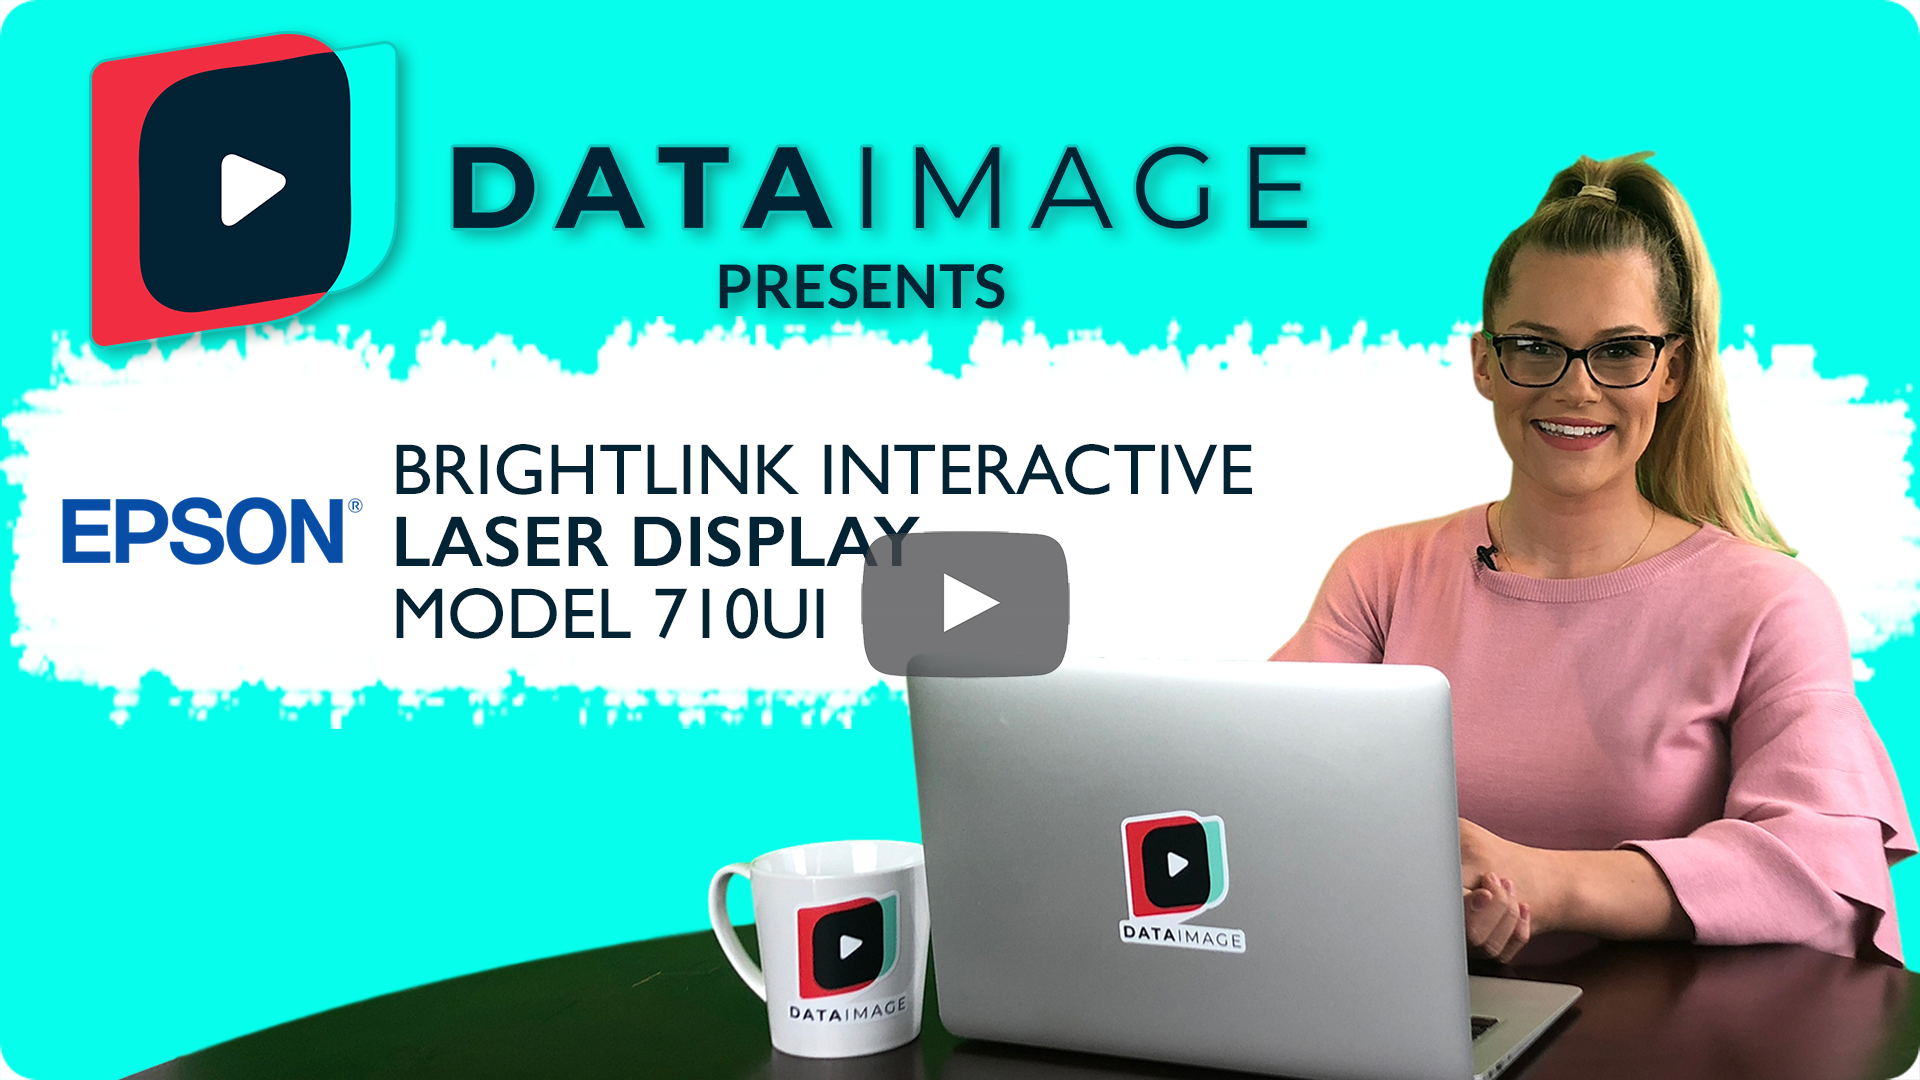 Data Image Presents the Epson Brightlink Interactive Laser Display 710Ui